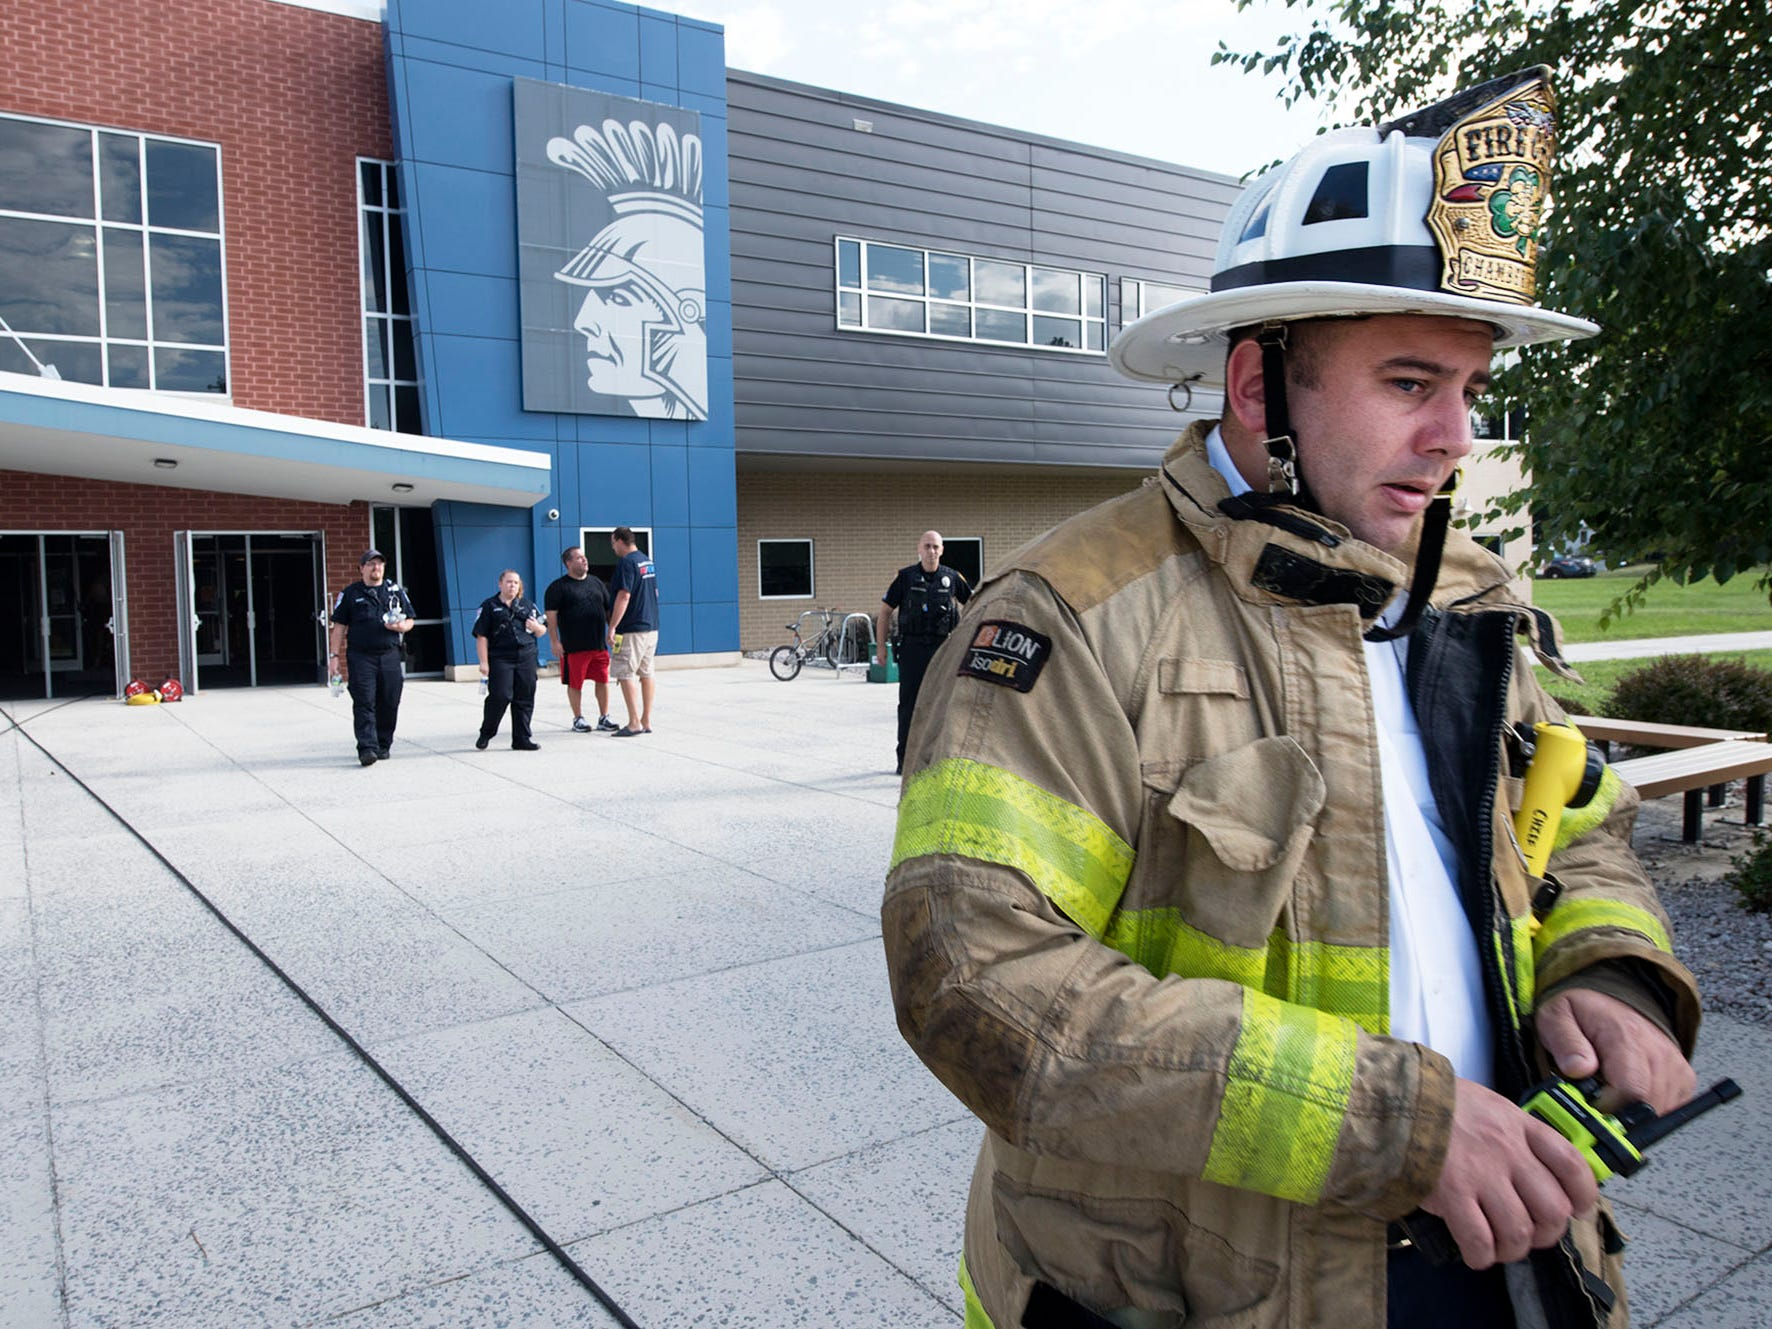 Chambersburg Fire Chief Dustin Ulrich takes command in front of CASHS. Chambersburg Area Senior High School students were evacuated Thursday morning, August 30, 2018 after a battery ignited a fire in a storage room , sending smoke throughout the building.